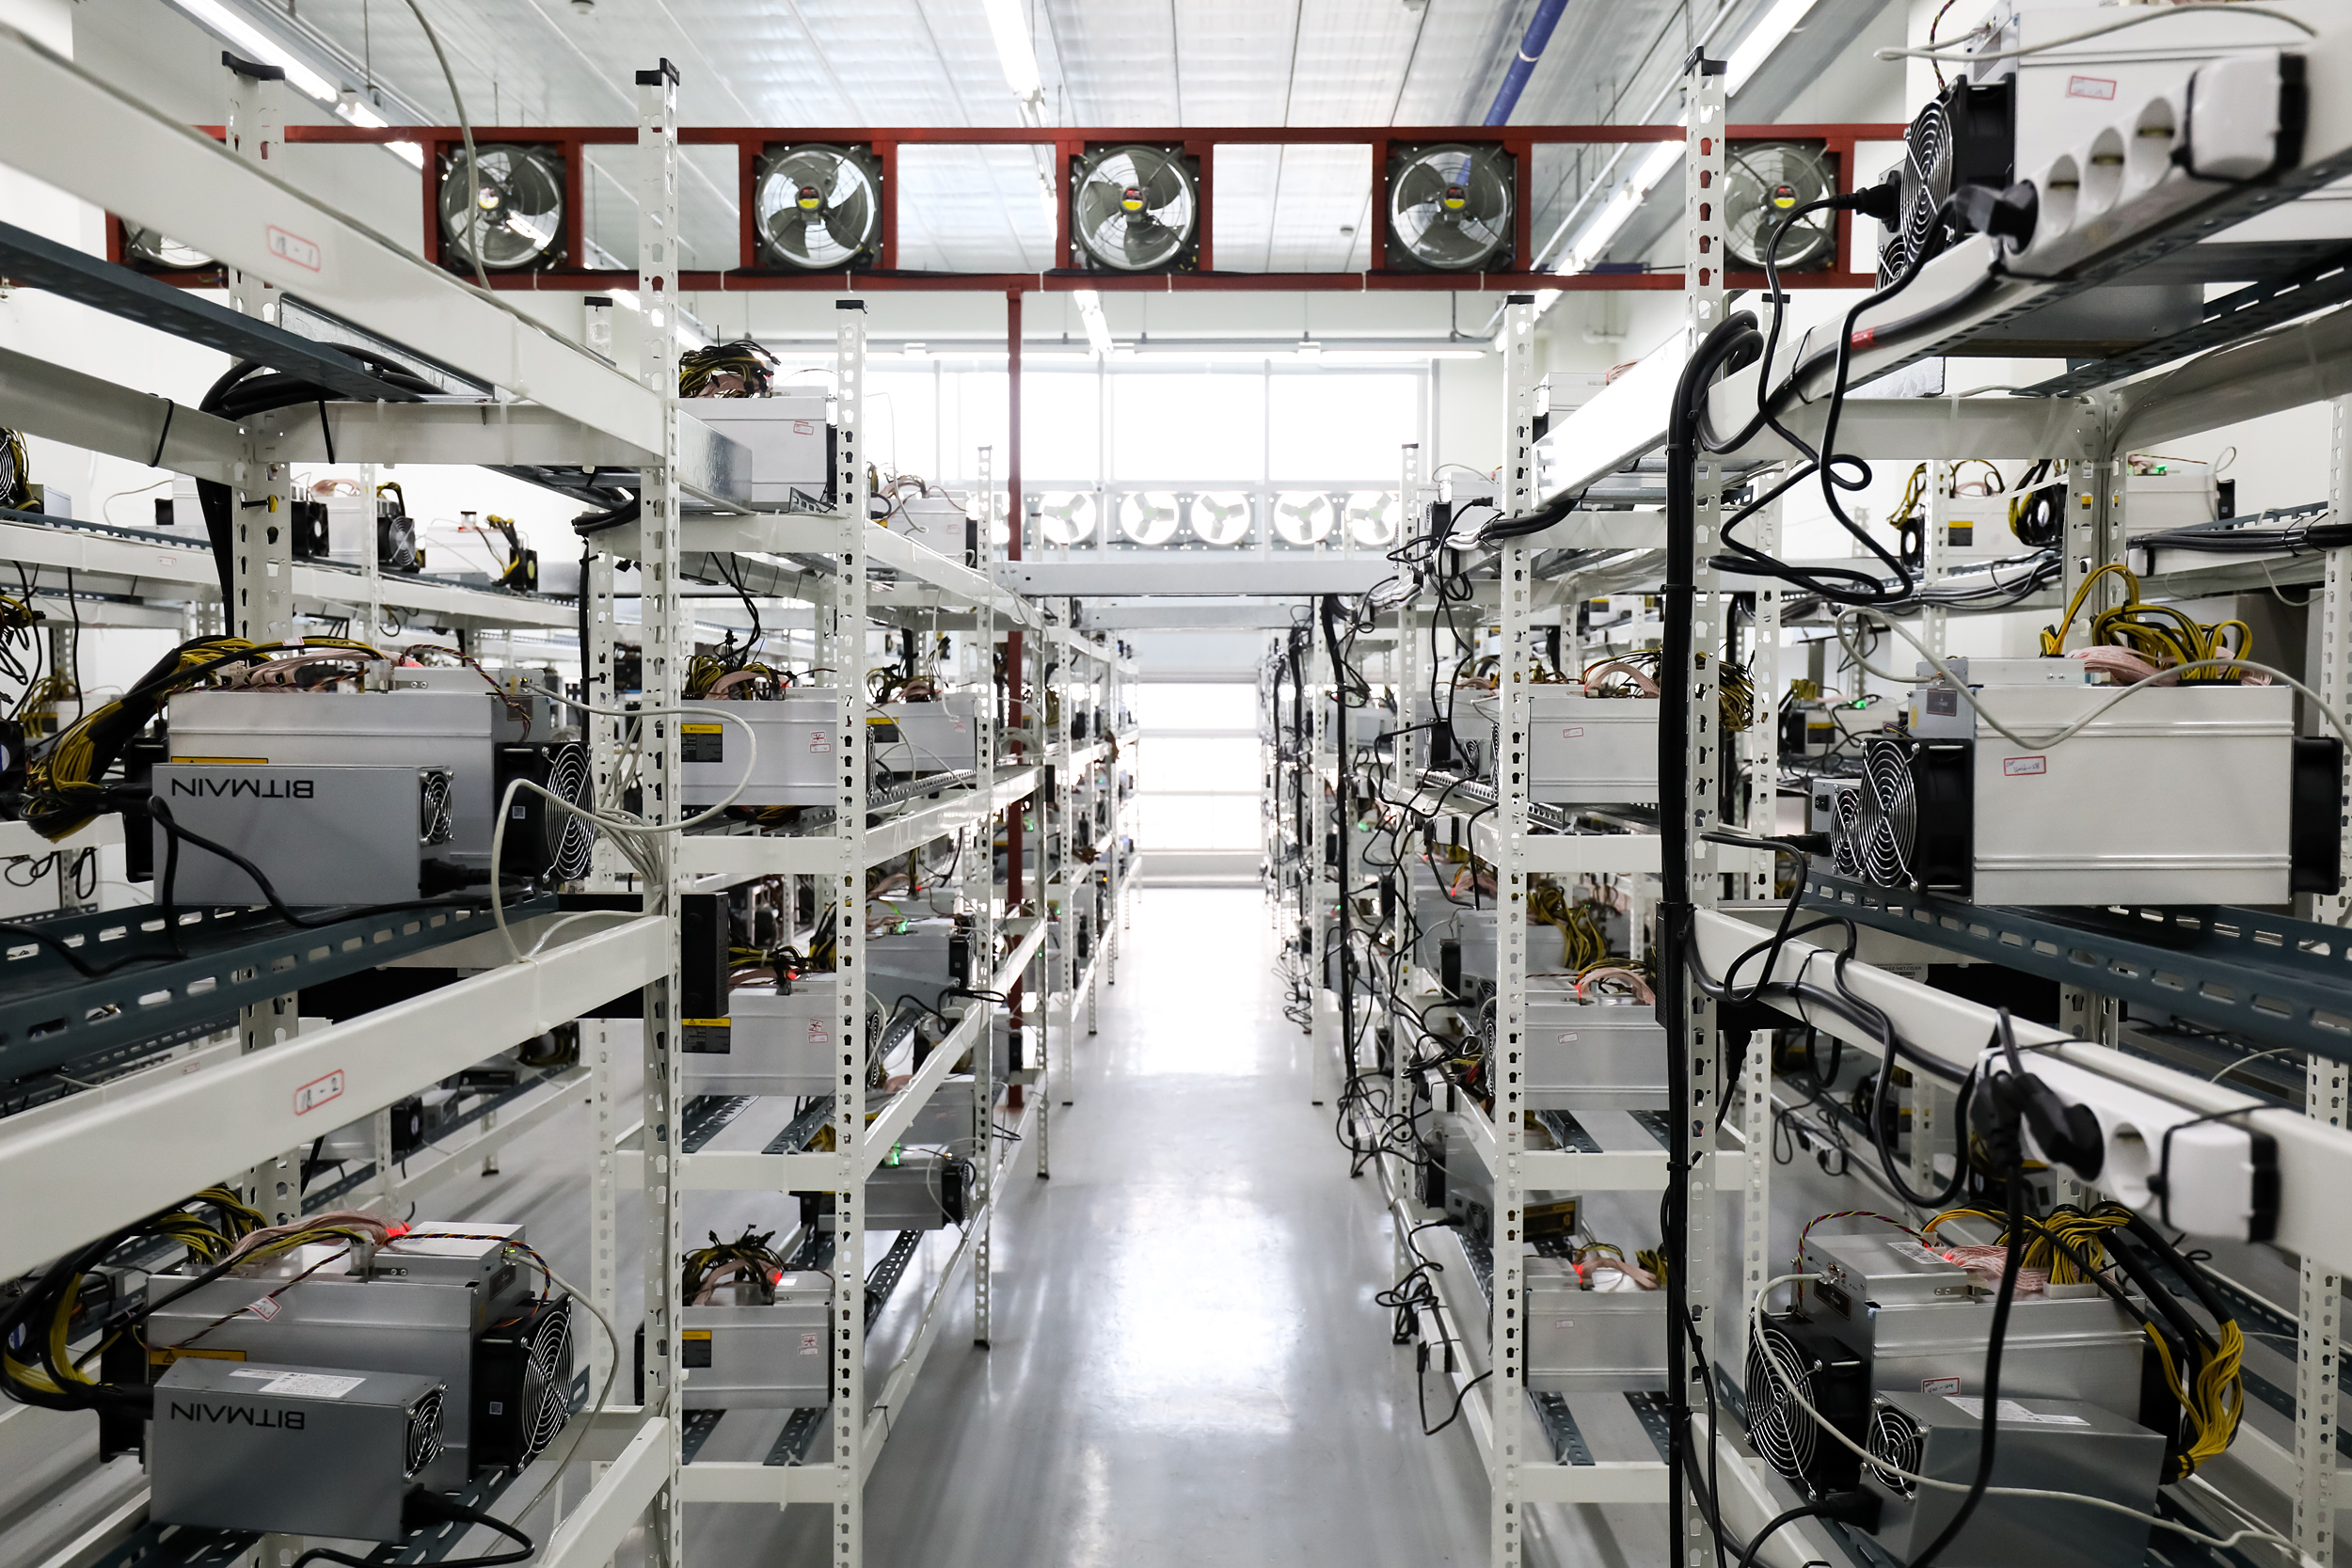 energy cost for mining cryptocurrencies